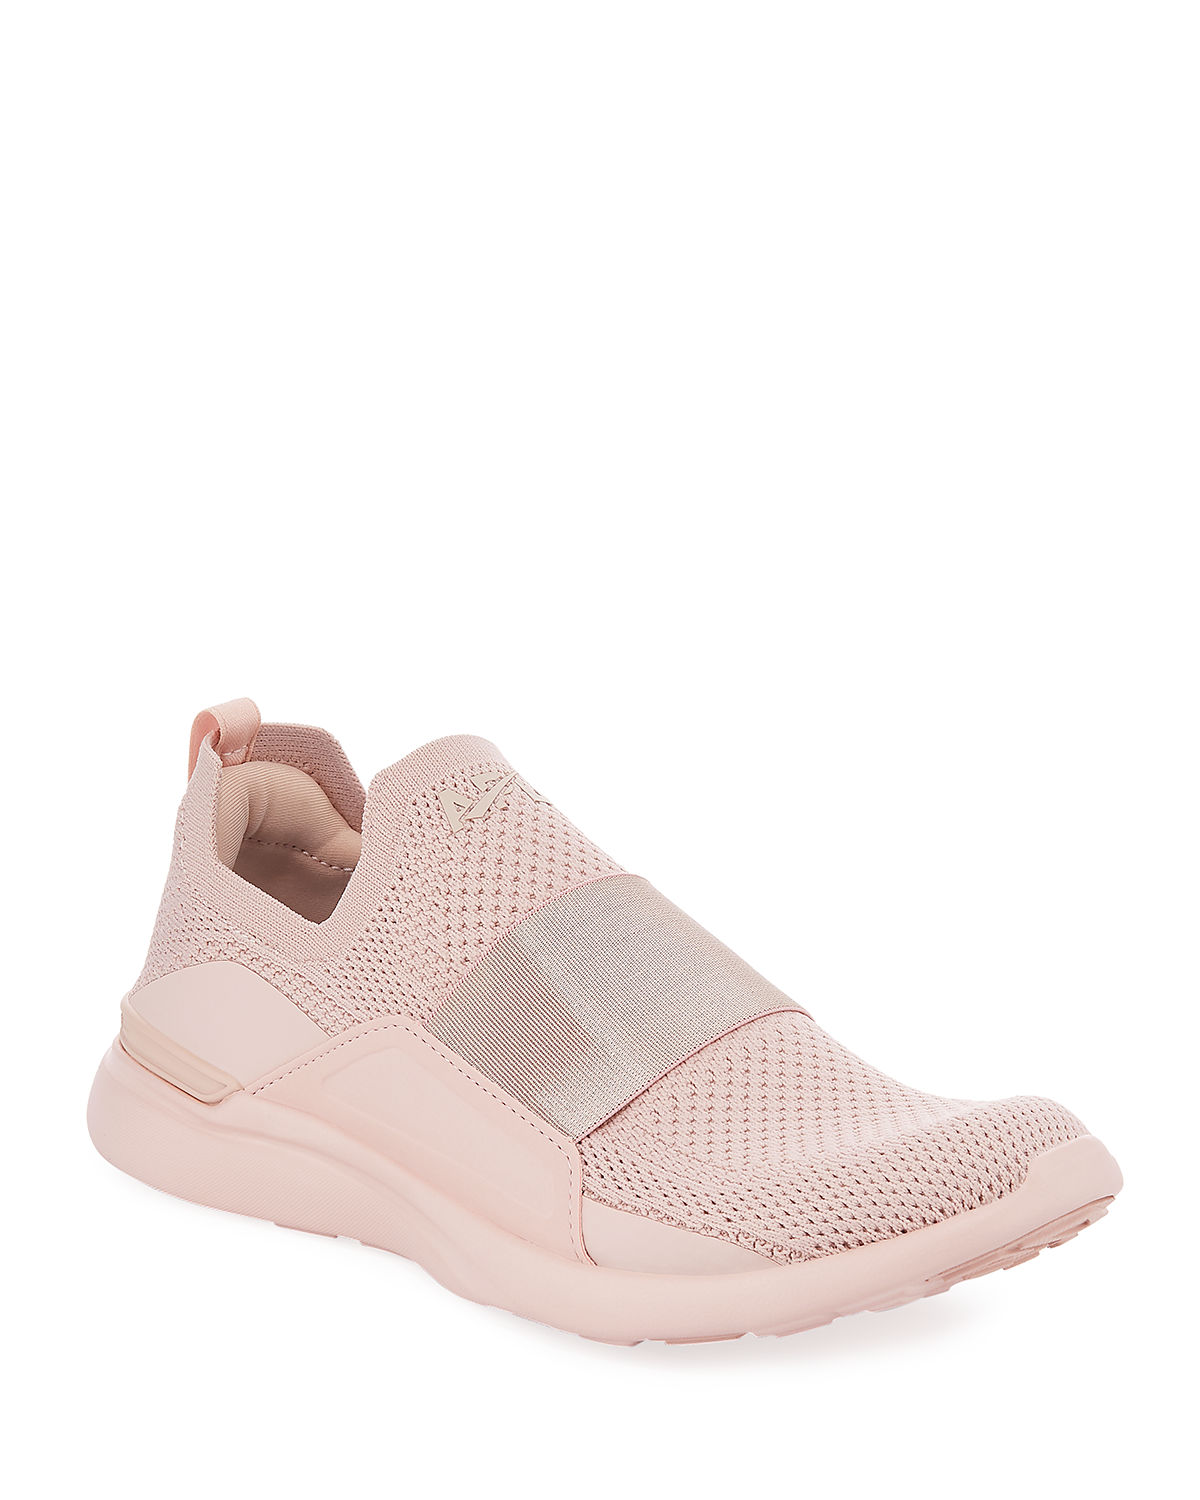 Apl Athletic Propulsion Labs Sneakers TECHLOOM BLISS KNIT SLIP-ON RUNNING SNEAKERS